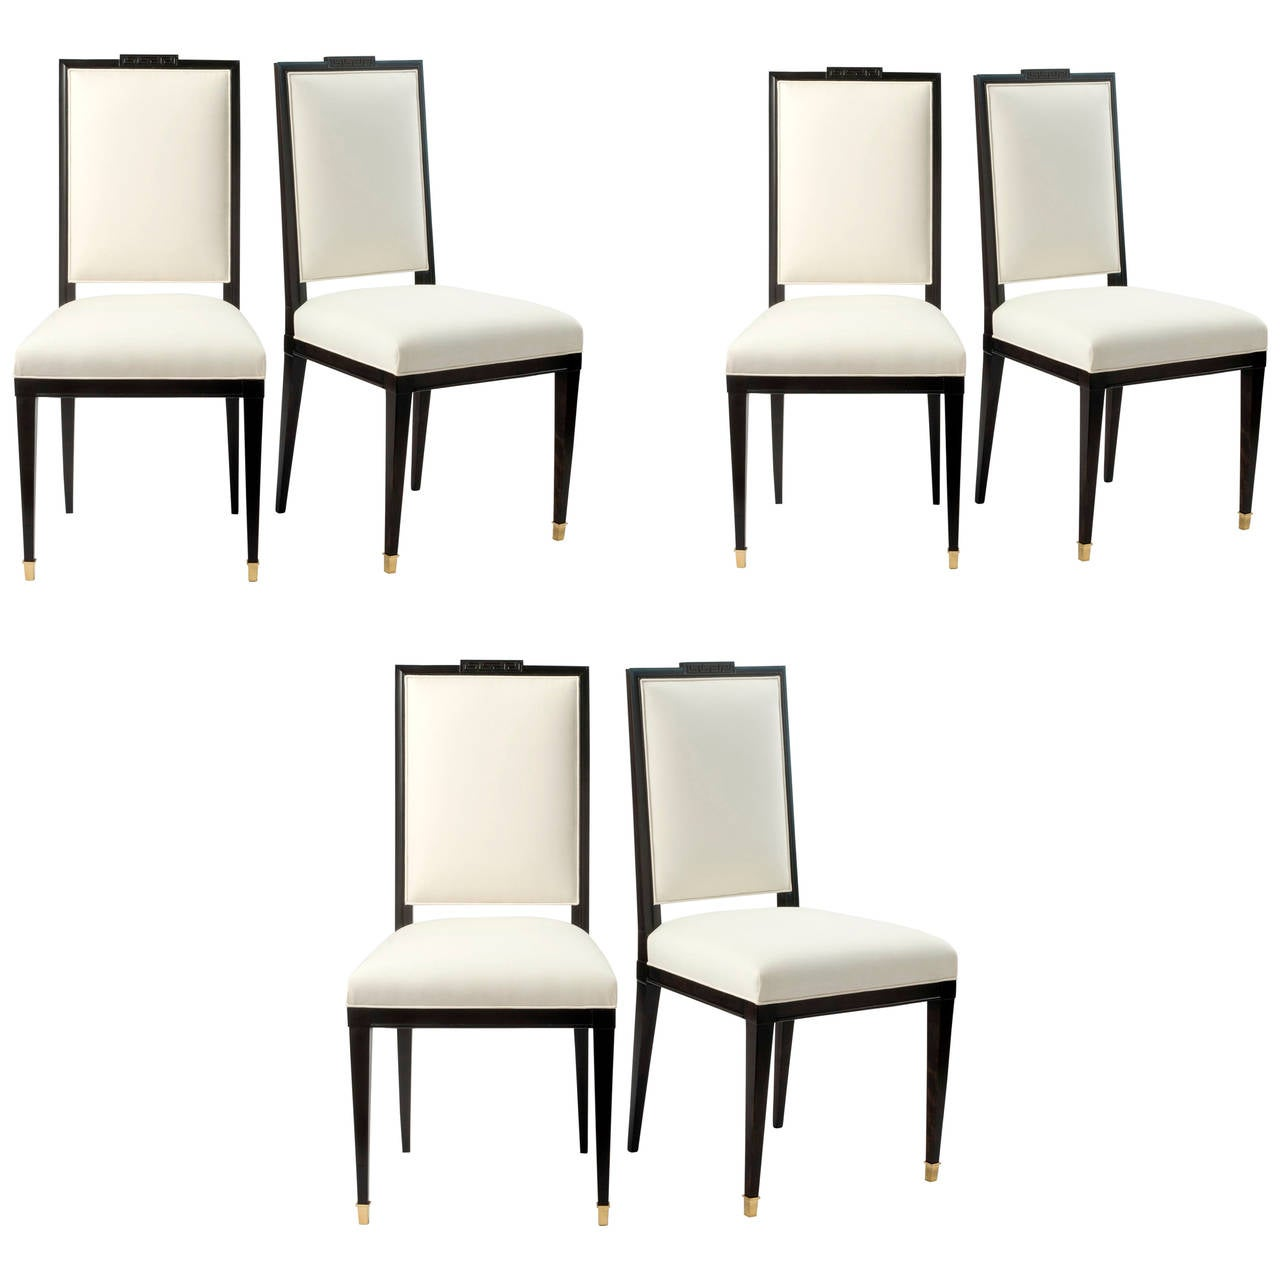 Fascinating dining room furniture houston tx inspired pics for Dining room tables houston